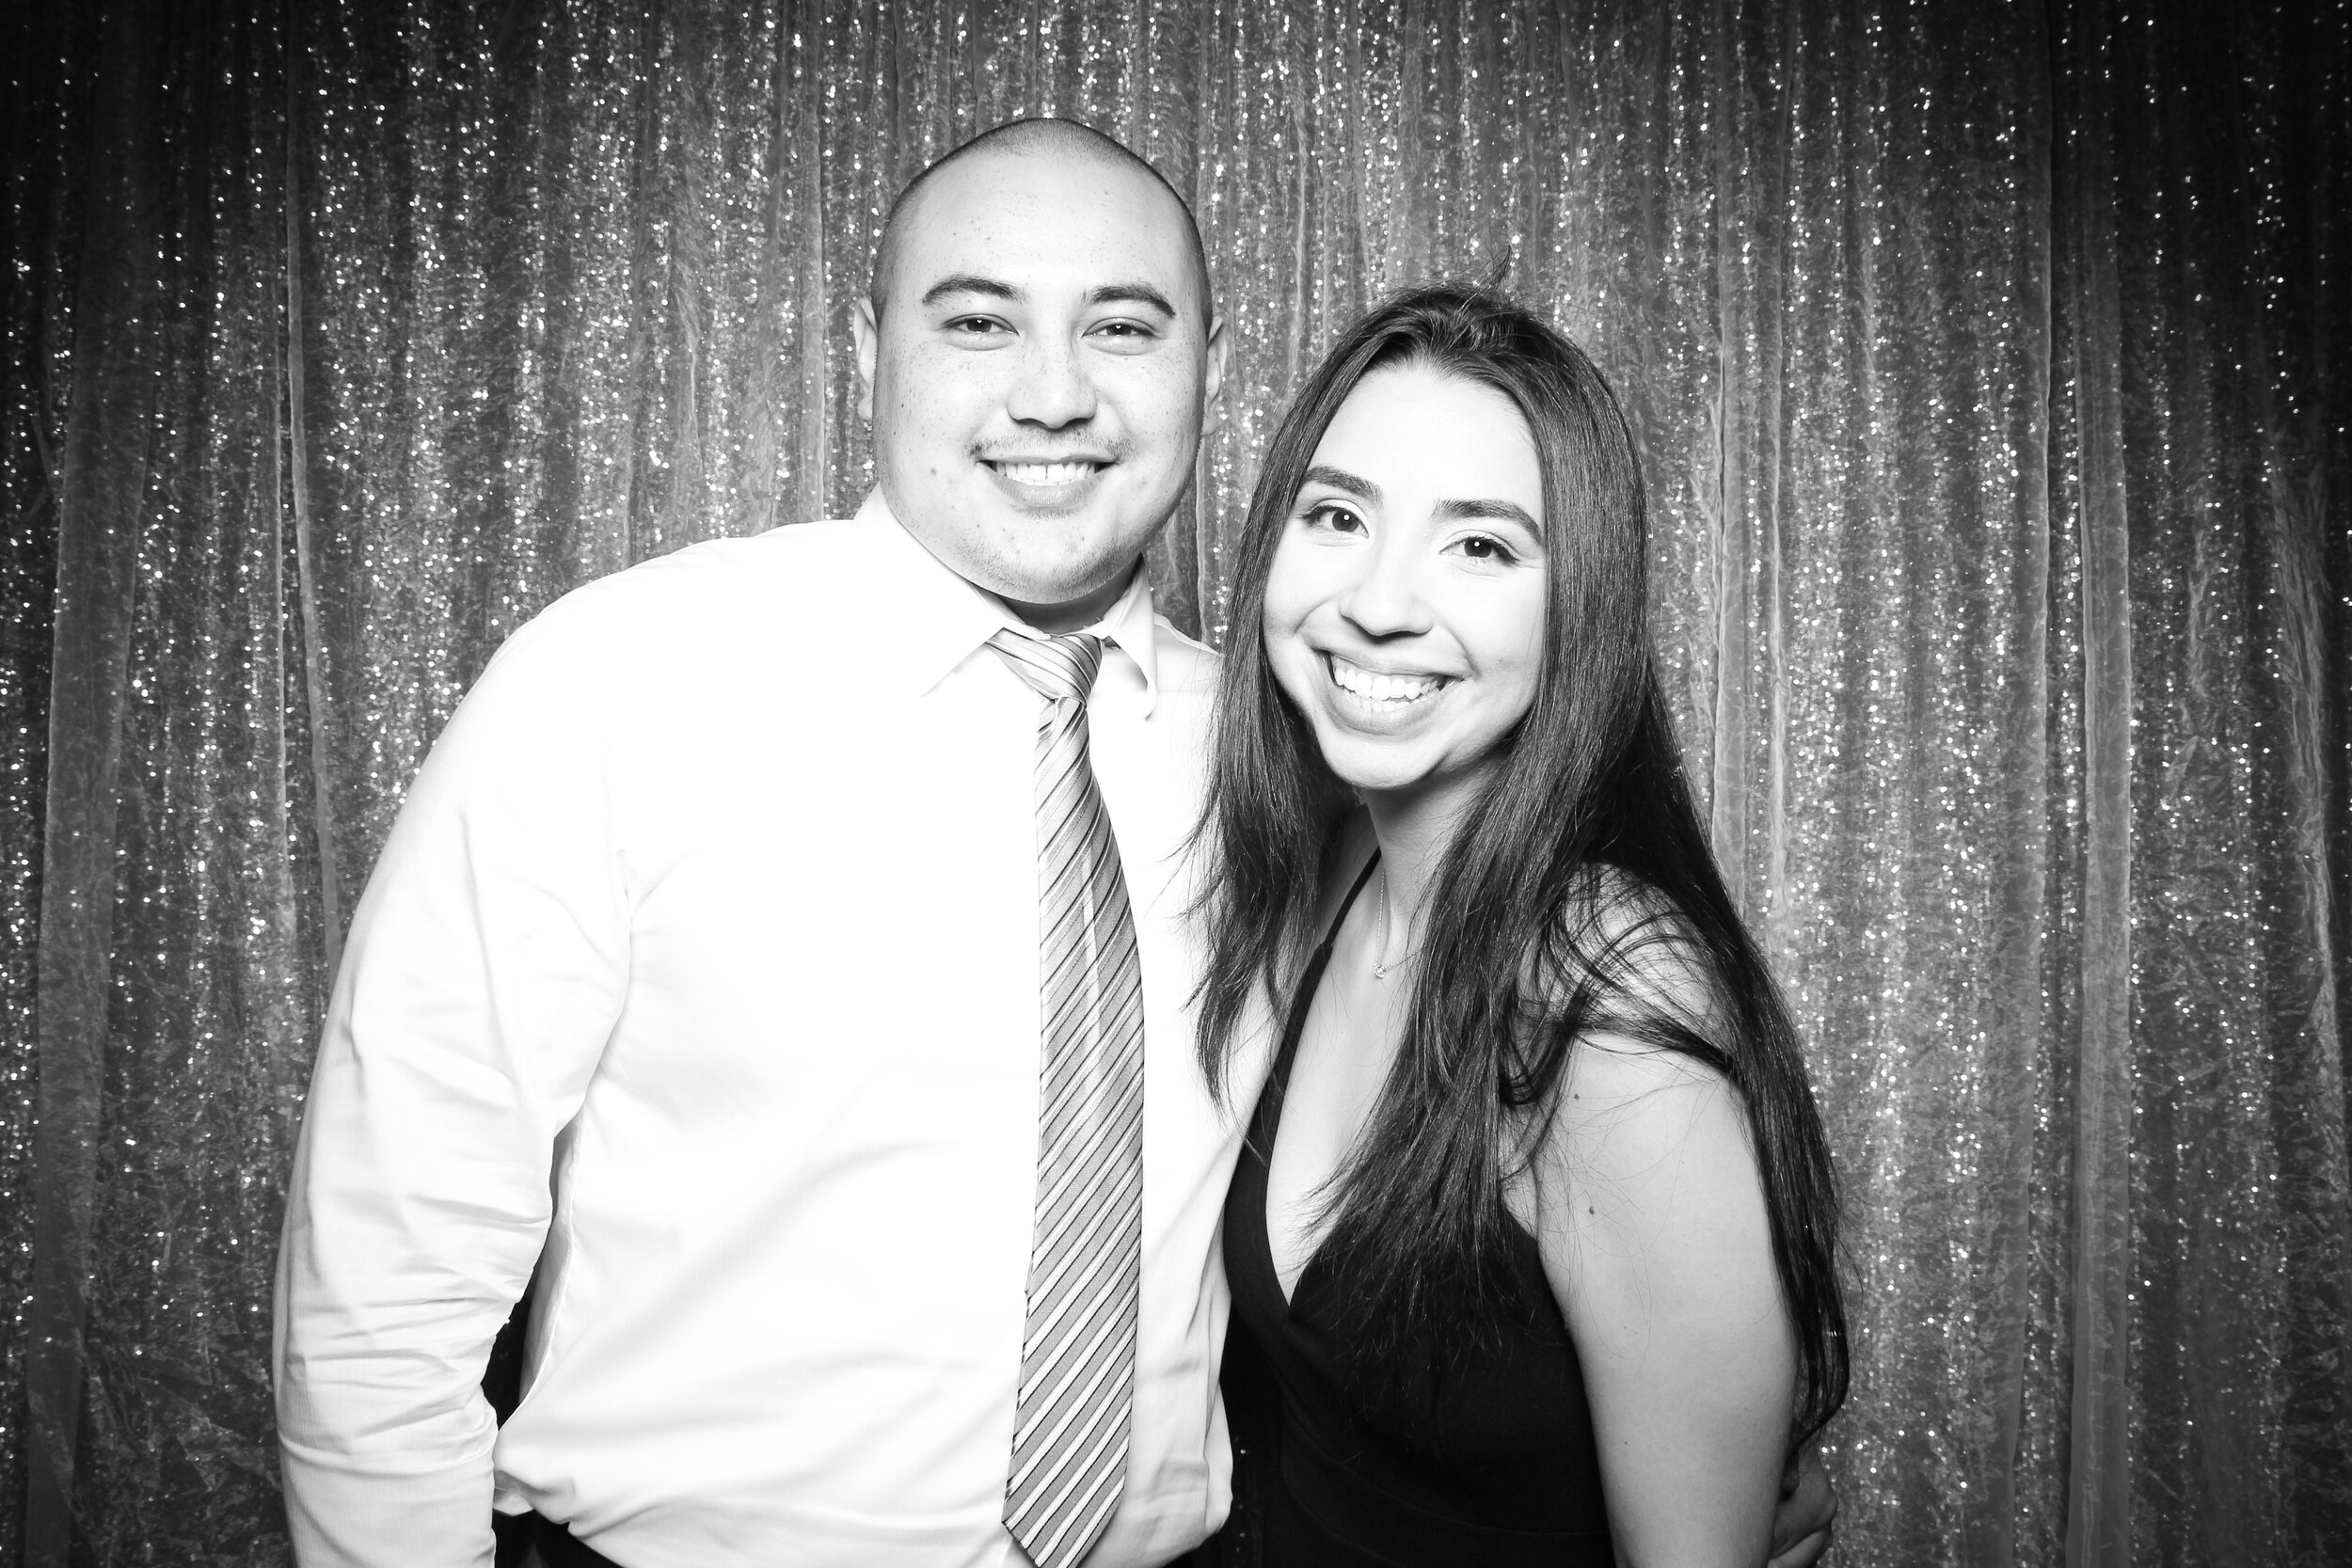 Ravisloe_Country_Club_Wedding_Photo_Booth_02.jpg